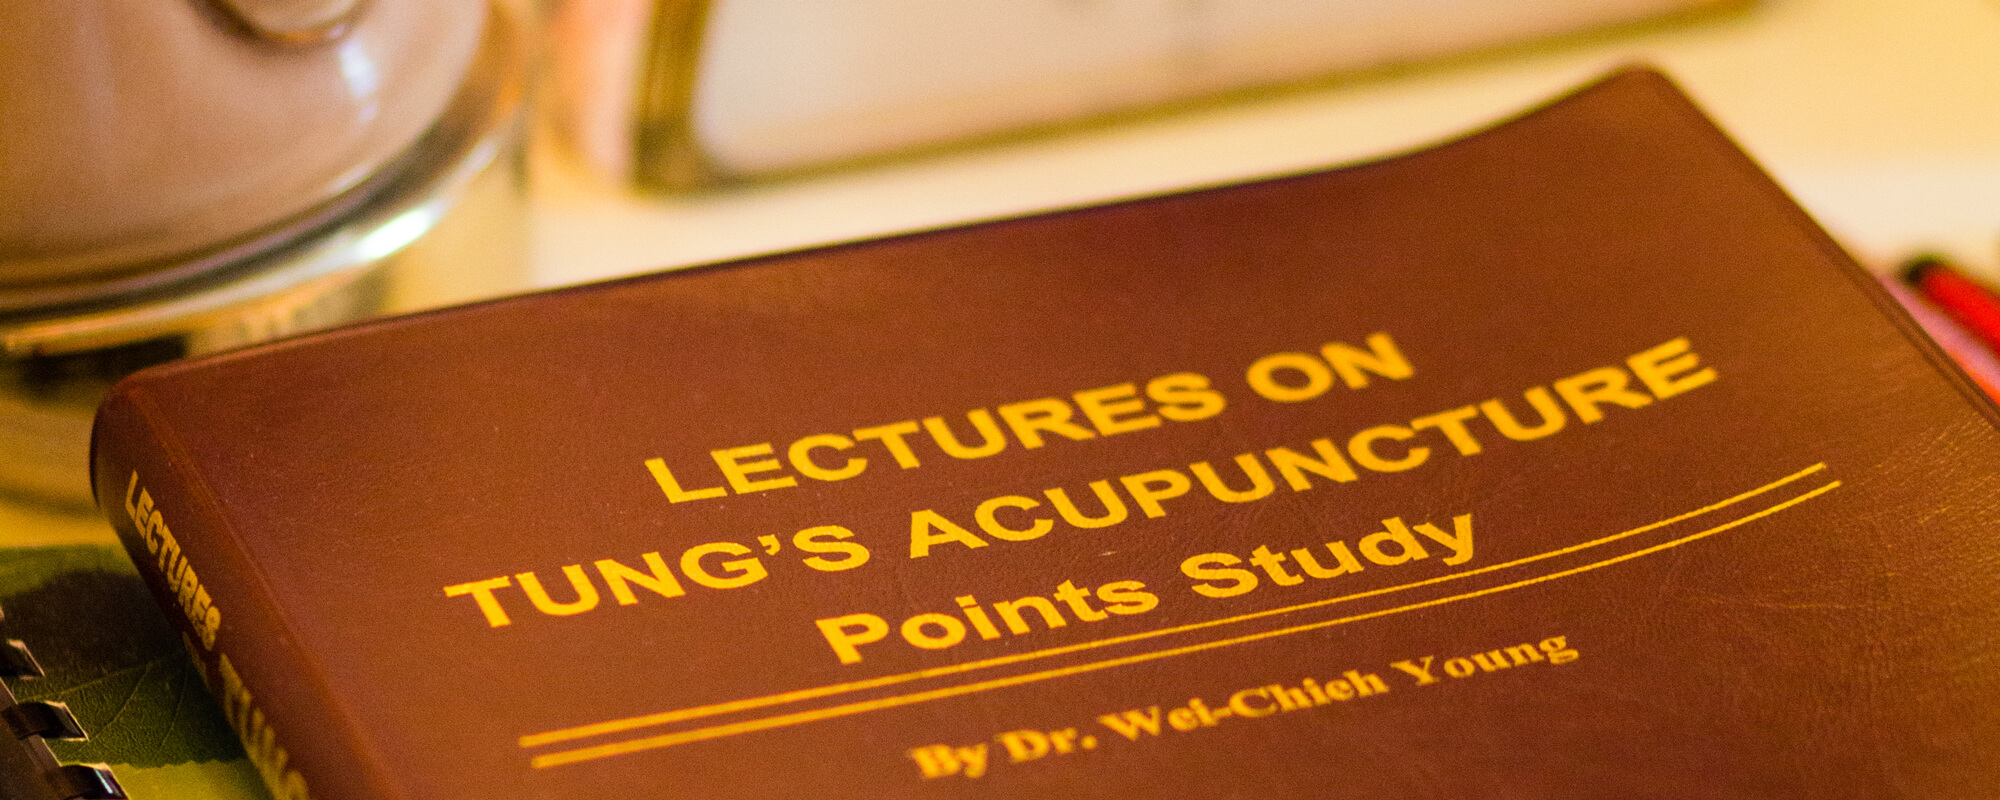 Lectures on Acupuncture